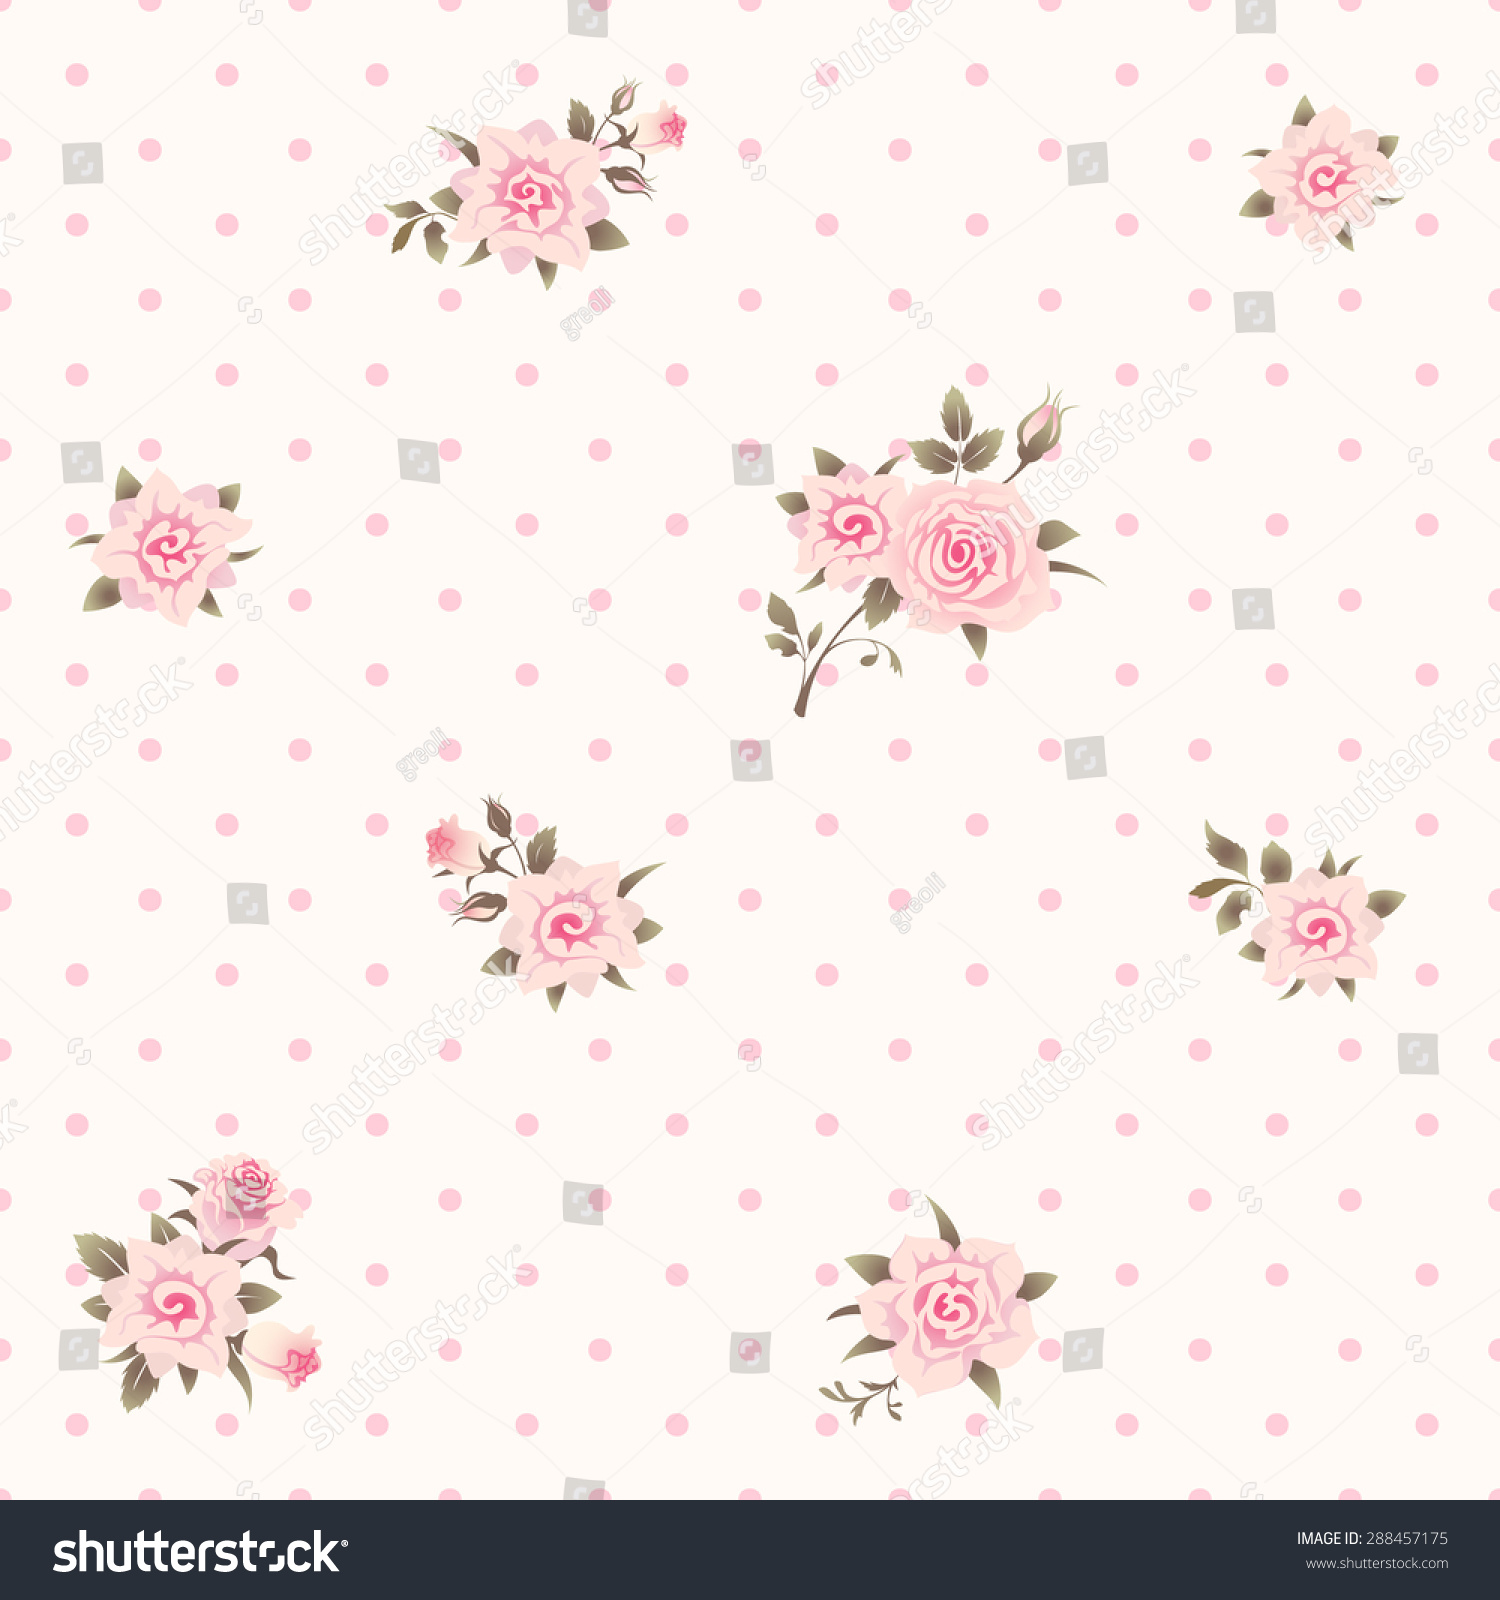 Seamless Floral Polka Dot Background Shabby Chic Style Pattern With Pink Roses